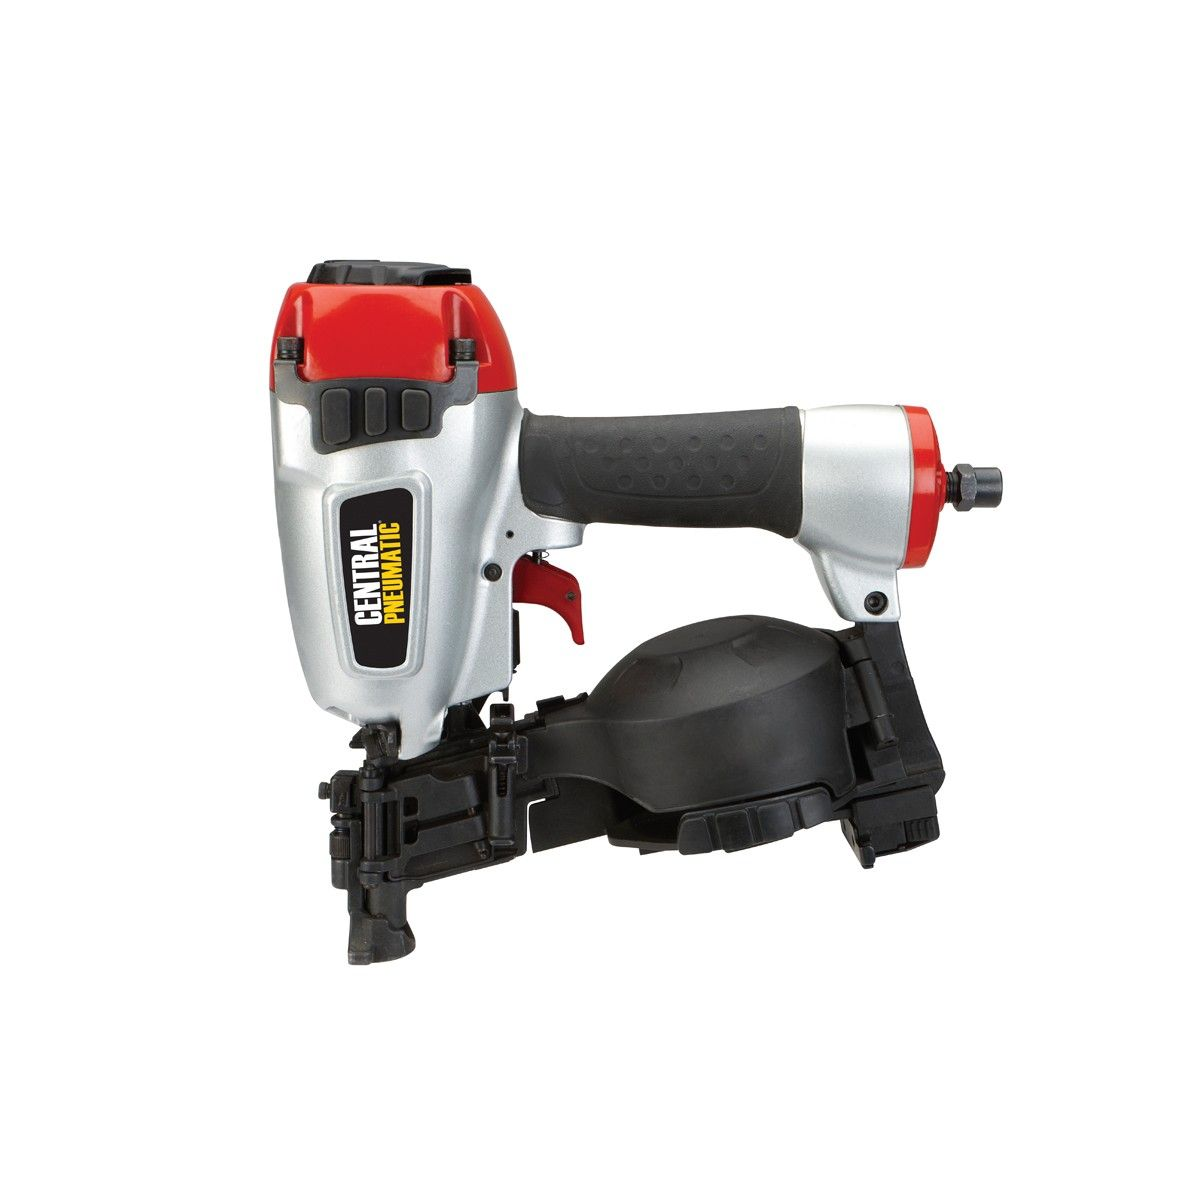 Pneumatic Finish Nailer Harbor Freight